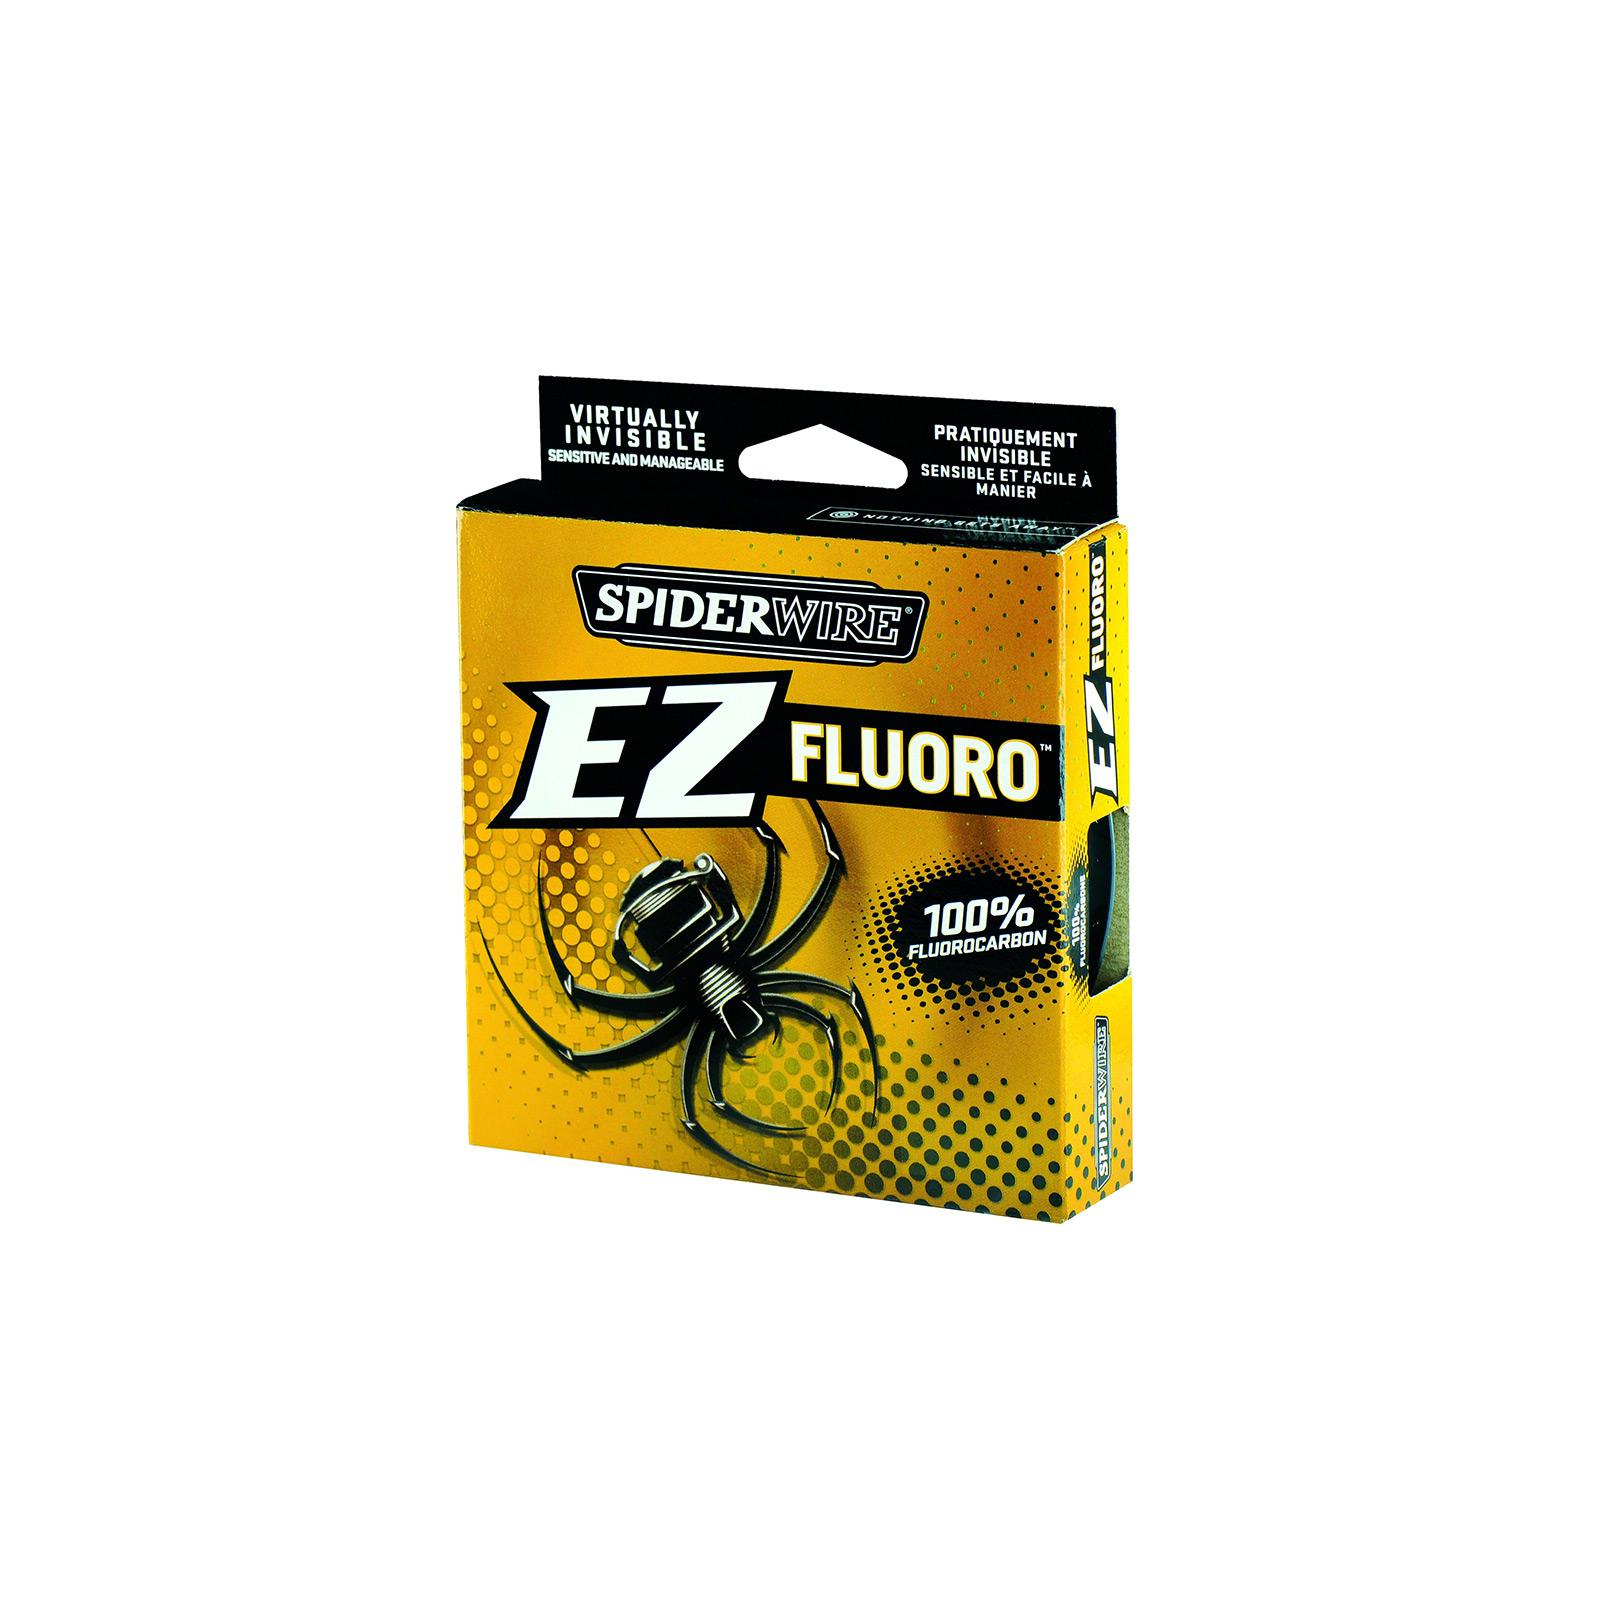 SpiderWire EZ Fluoro Fishing Line, 200 yd Filler Spool by Spiderwire